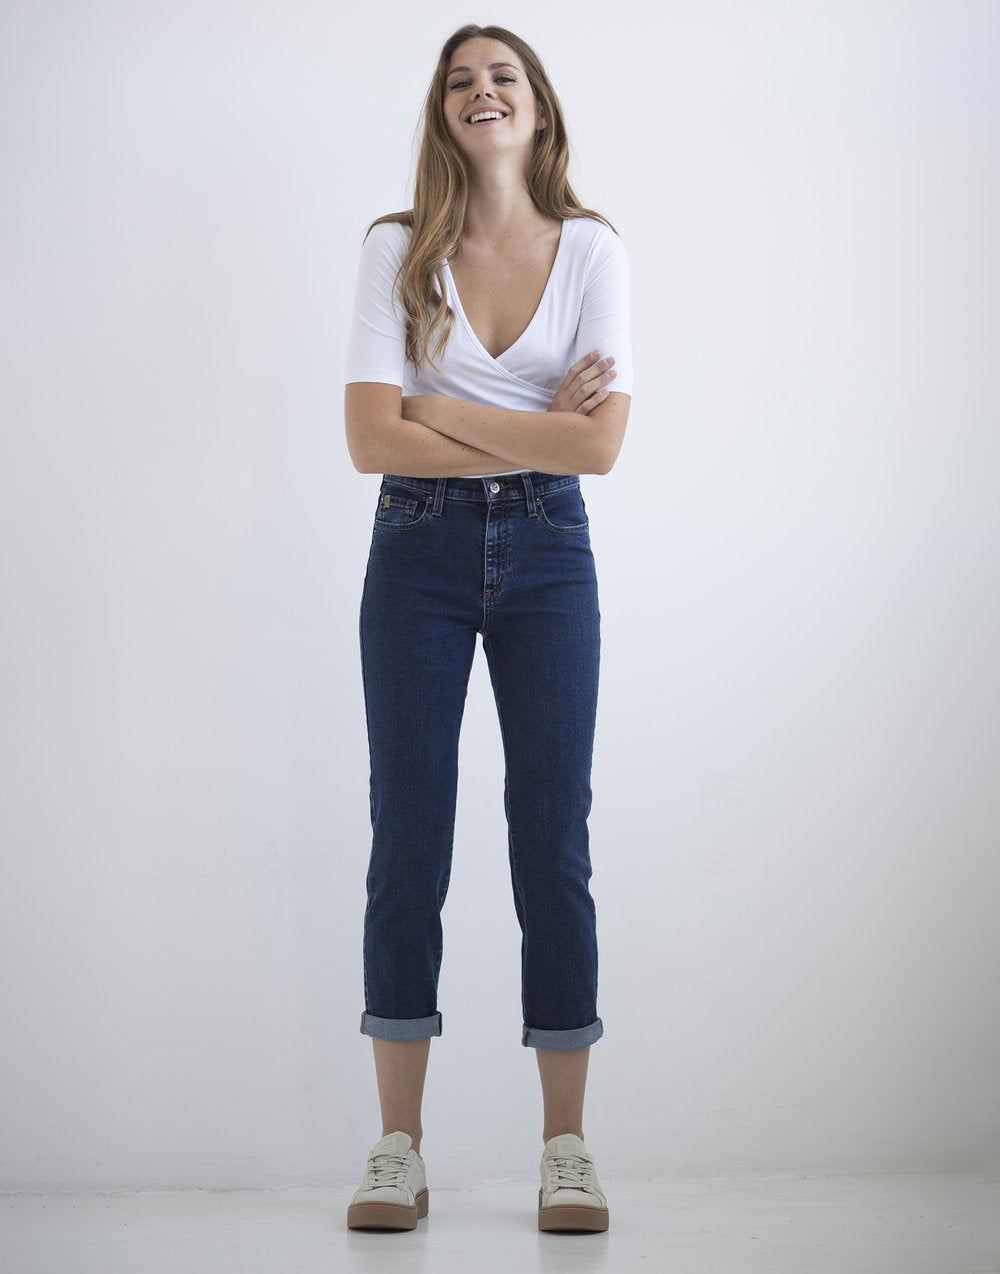 Yoga Jeans - Emily Slim Jeans